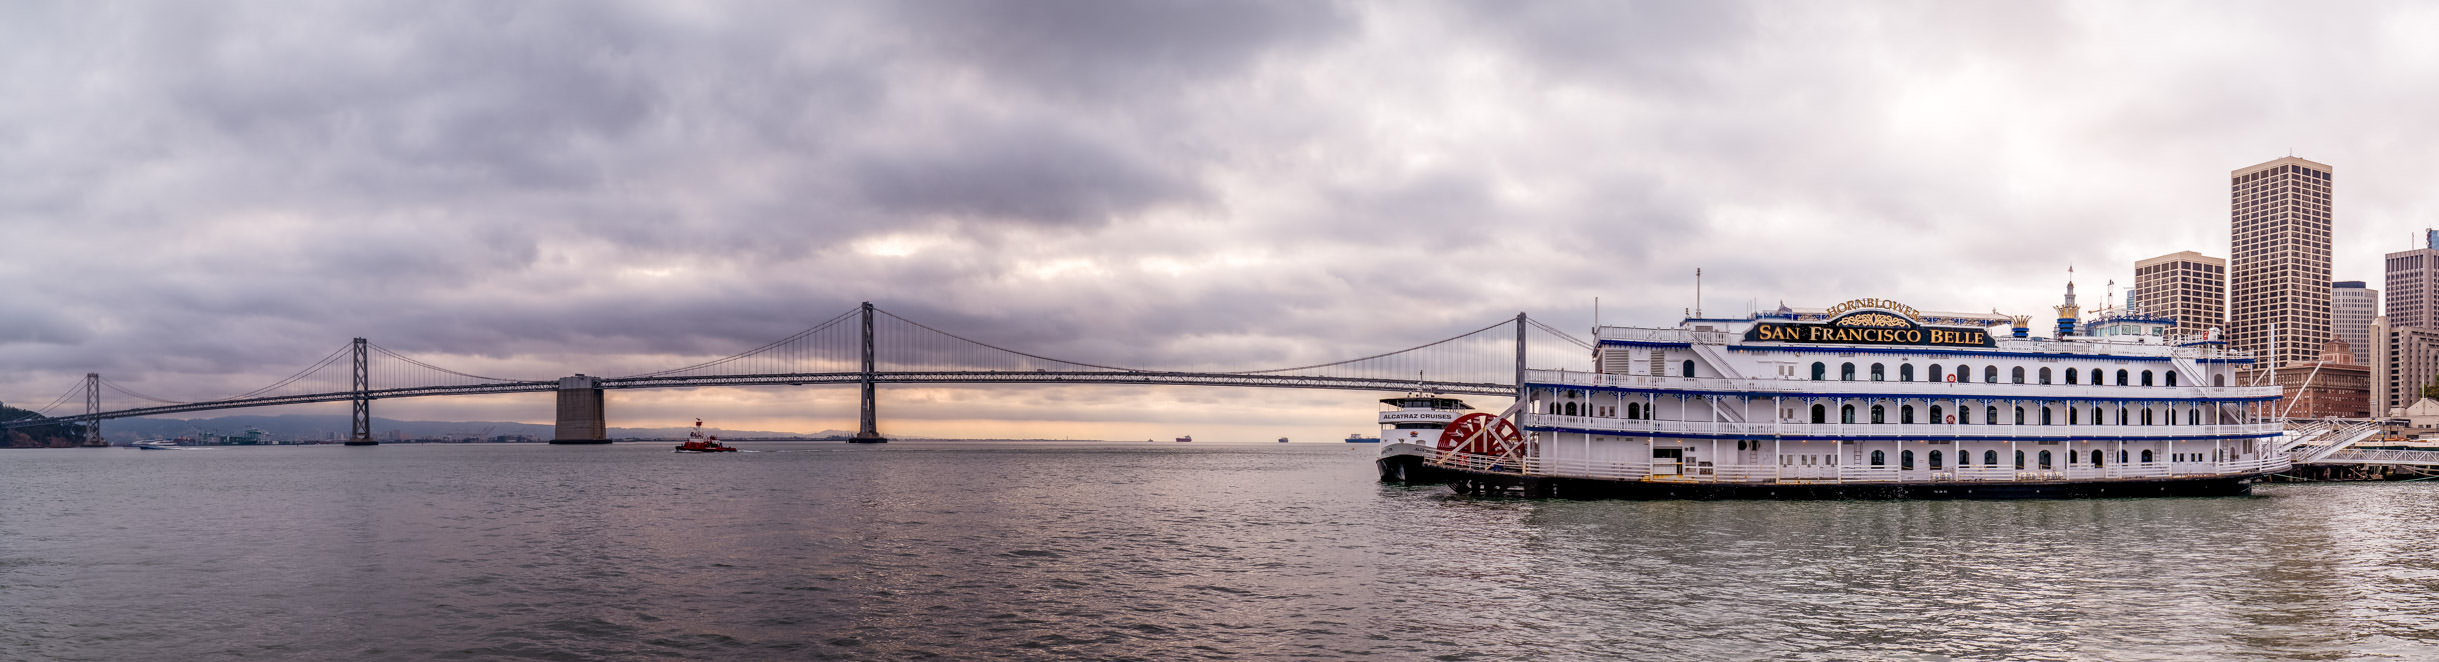 Hornblower Cruises' dining yacht San Francisco Belle sits docked along the city's waterfront as the Bay Bridge sweeps gracefully across the horizon as the sun begins to rise on the Bay Area.